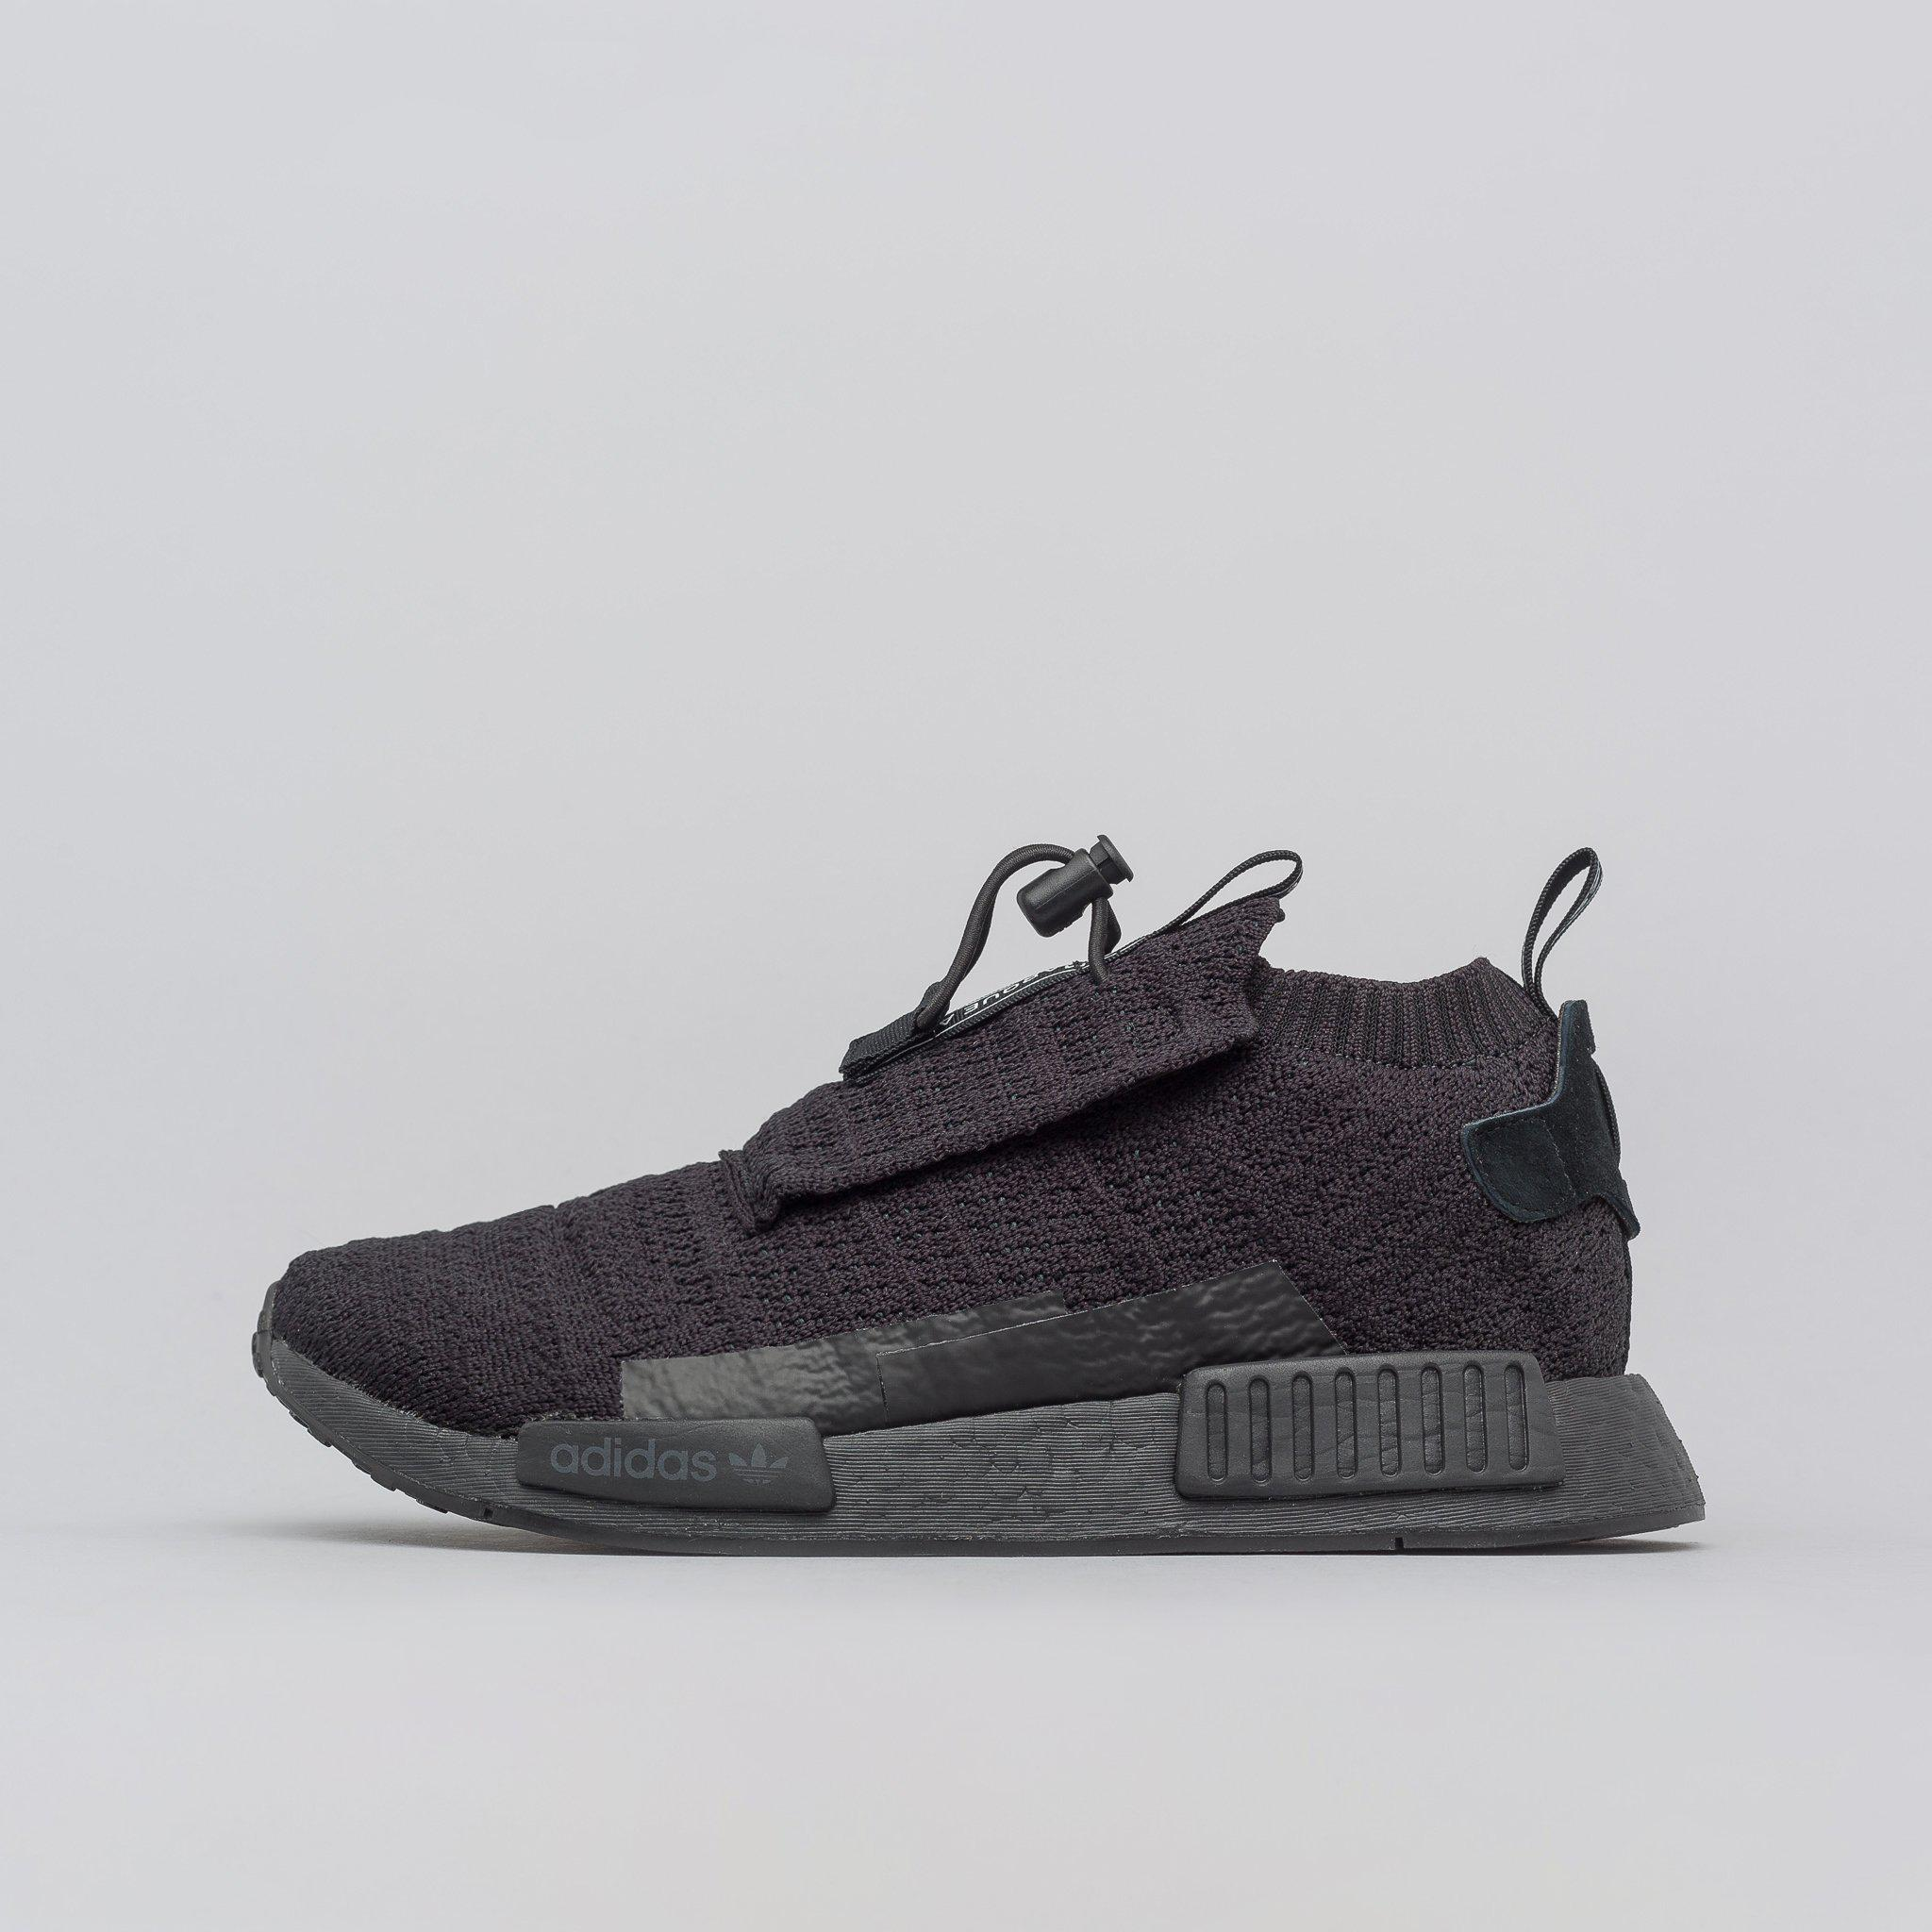 detailed look c02a0 e297c Lyst - adidas Nmd Ts1 Primeknit Gtx In Core Black in Black for Men